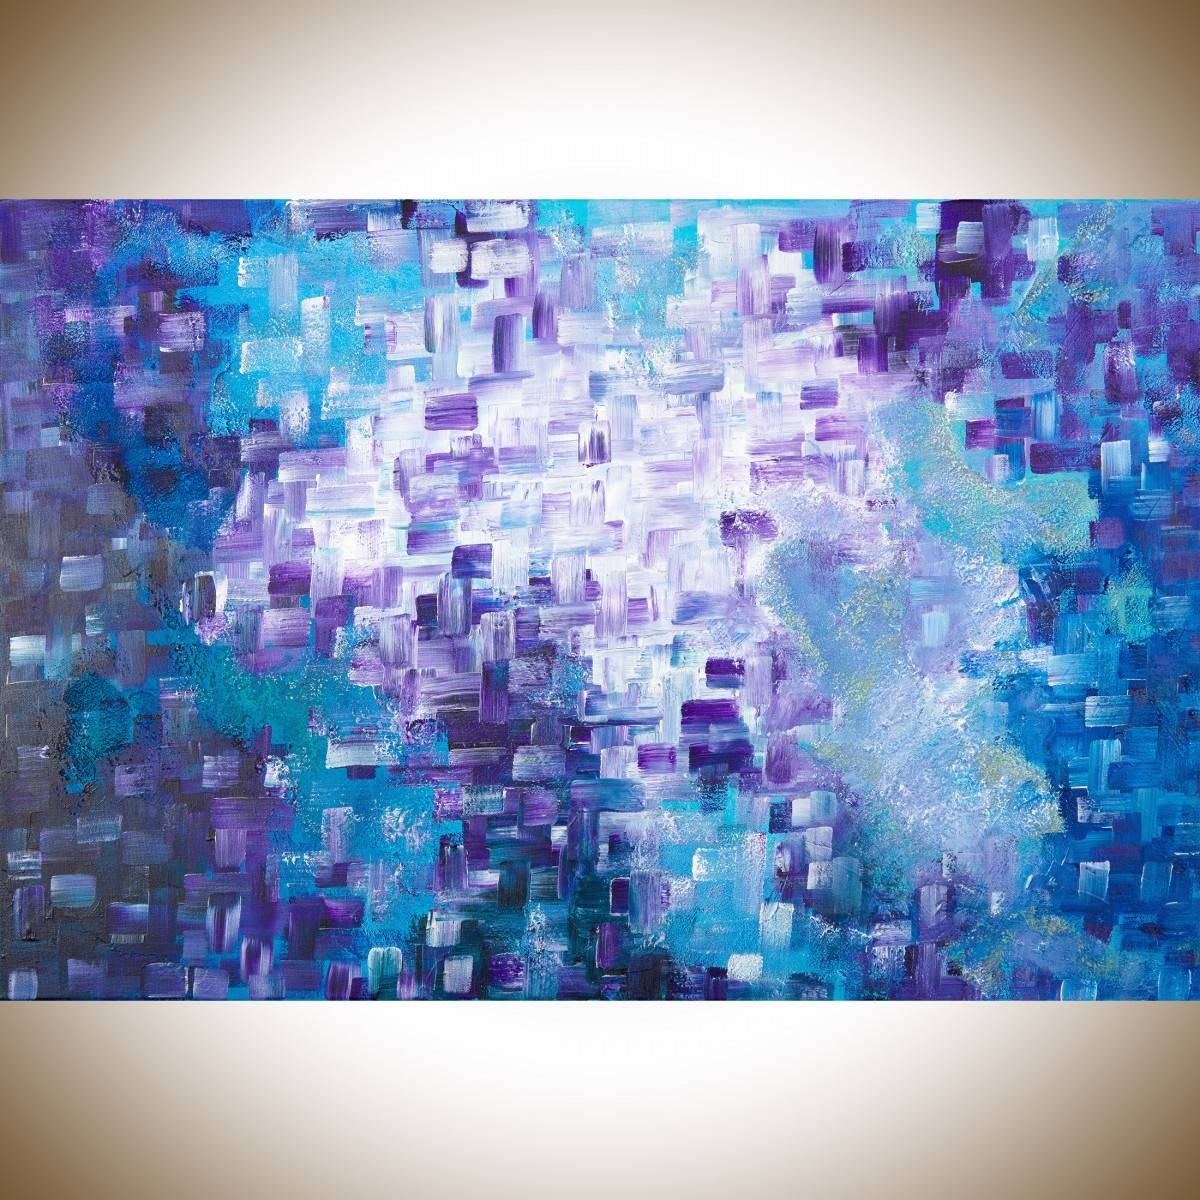 """Dissolvingqiqigallery 36""""x24"""" Stretched Canvas Original Large Within 2018 Purple Abstract Wall Art (View 5 of 20)"""